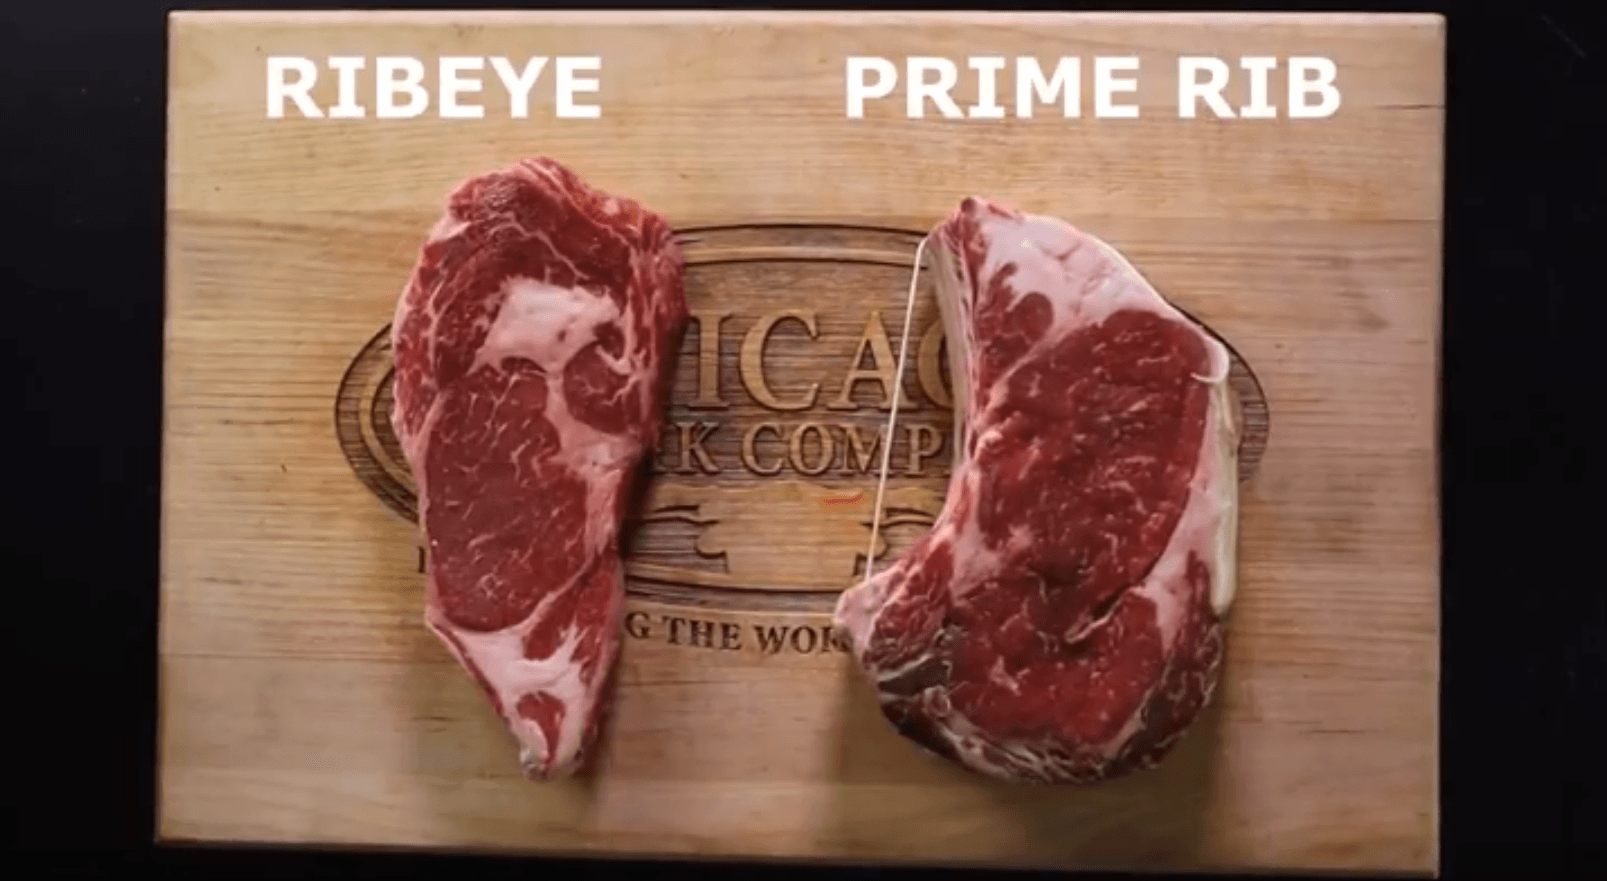 Difference Between A Prime Rib And A Ribeye Steak